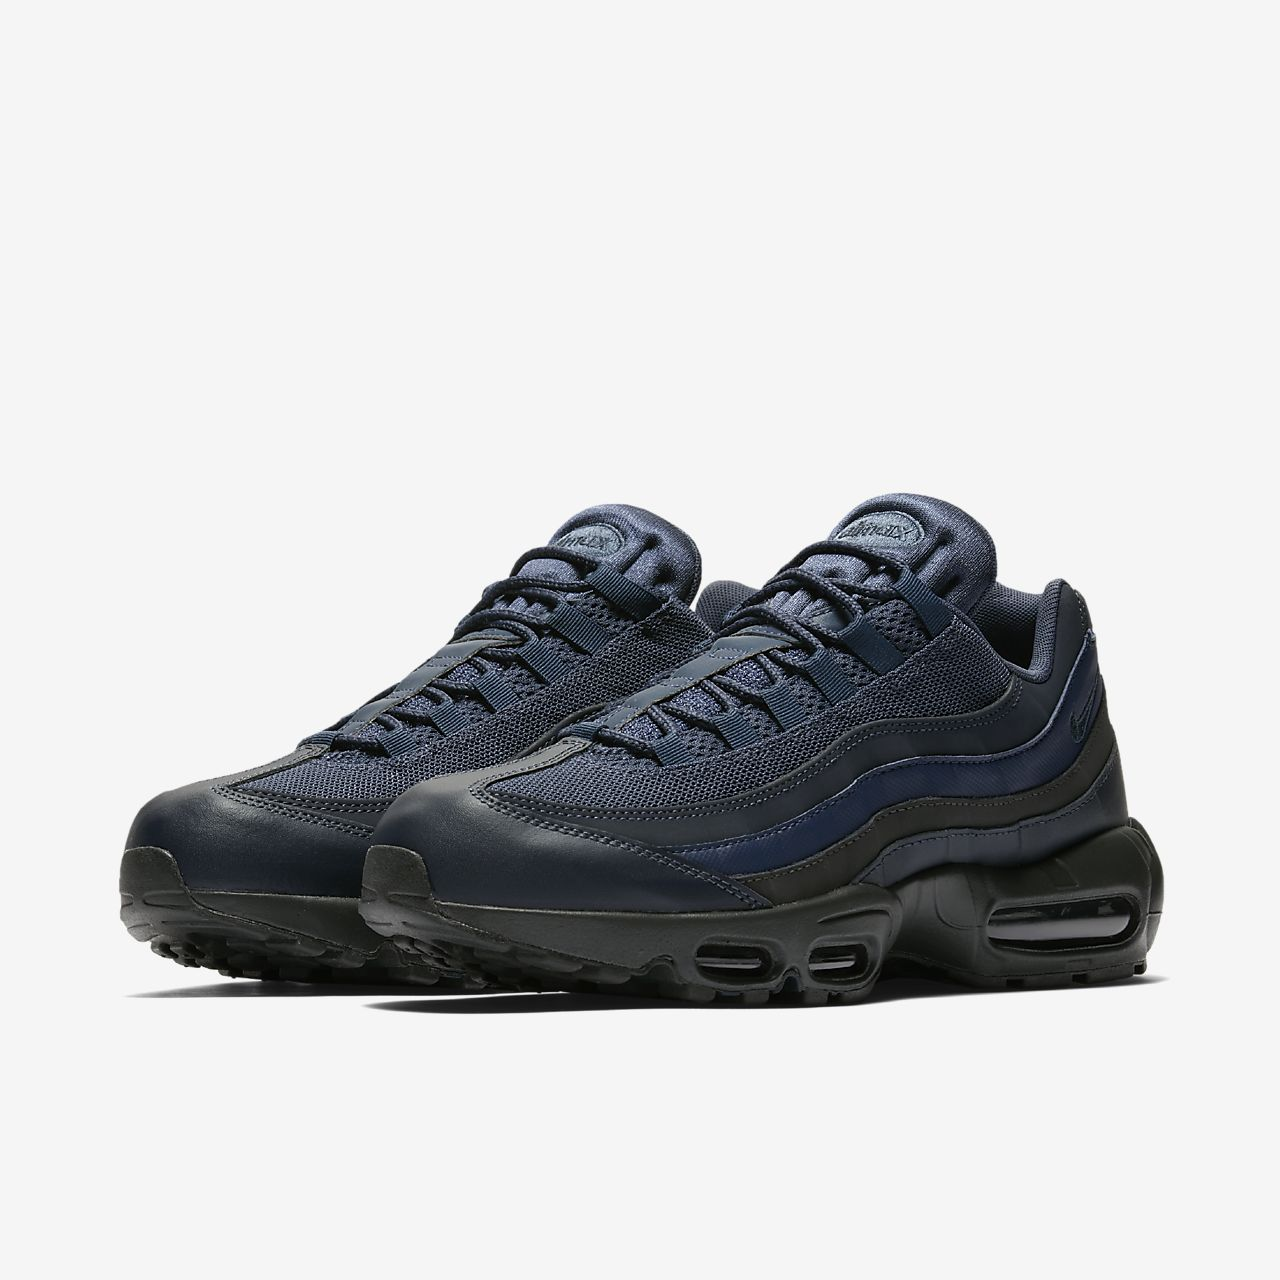 official photos 10146 47e92 Nike Air Max 95 Essential